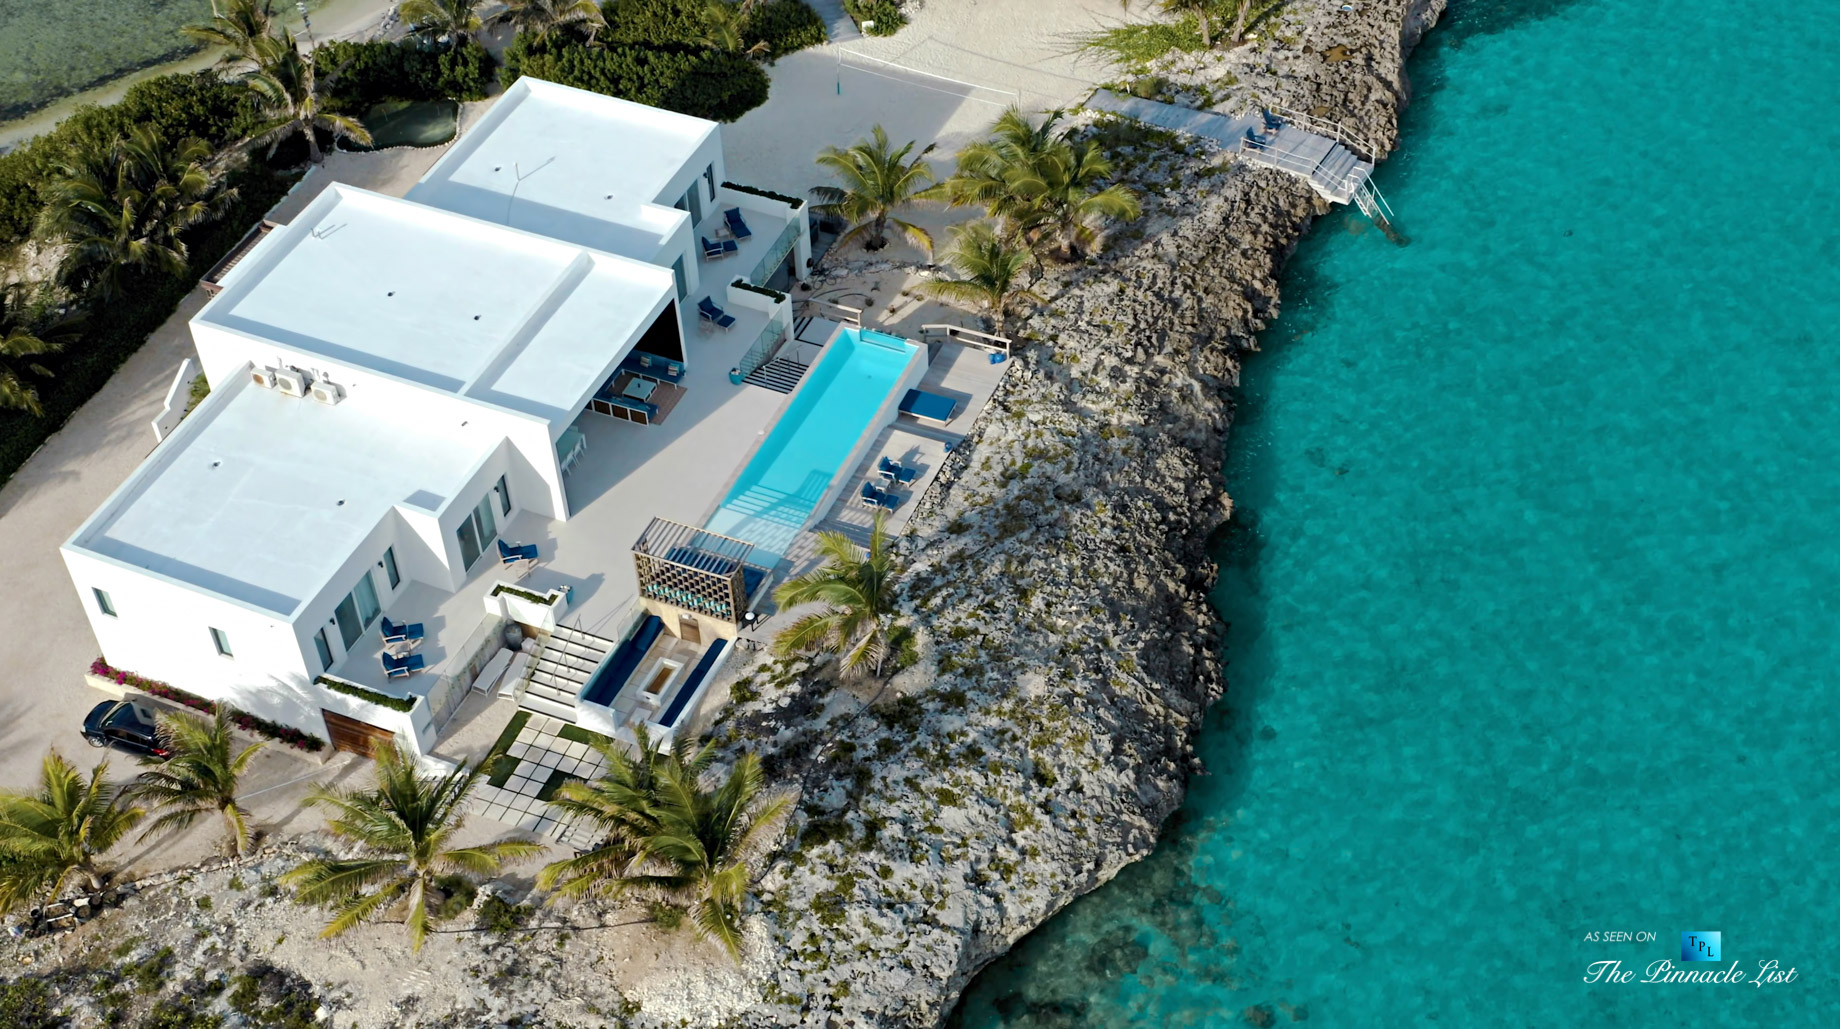 Tip of the Tail Villa - Providenciales, Turks and Caicos Islands - Drone Aerial View - Luxury Real Estate - South Shore Peninsula Home